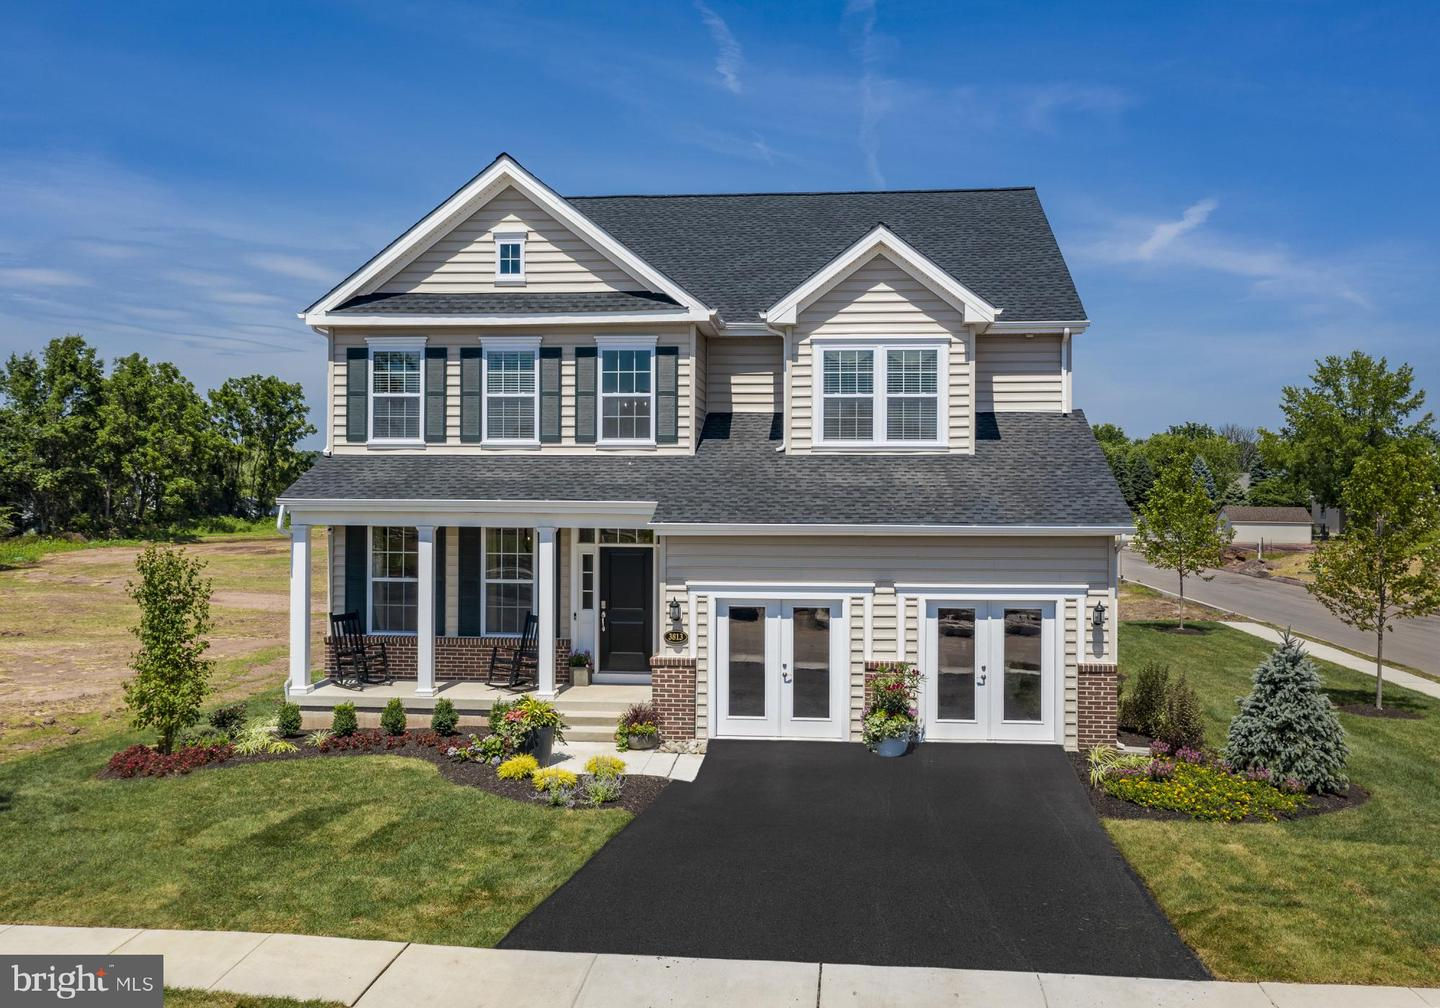 LOT 2 W PROSPECT AVE, NORTH WALES, Pennsylvania 19454, 4 Bedrooms Bedrooms, ,3 BathroomsBathrooms,Single Family,For Sale,LOT 2 W PROSPECT AVE,PAMC680802